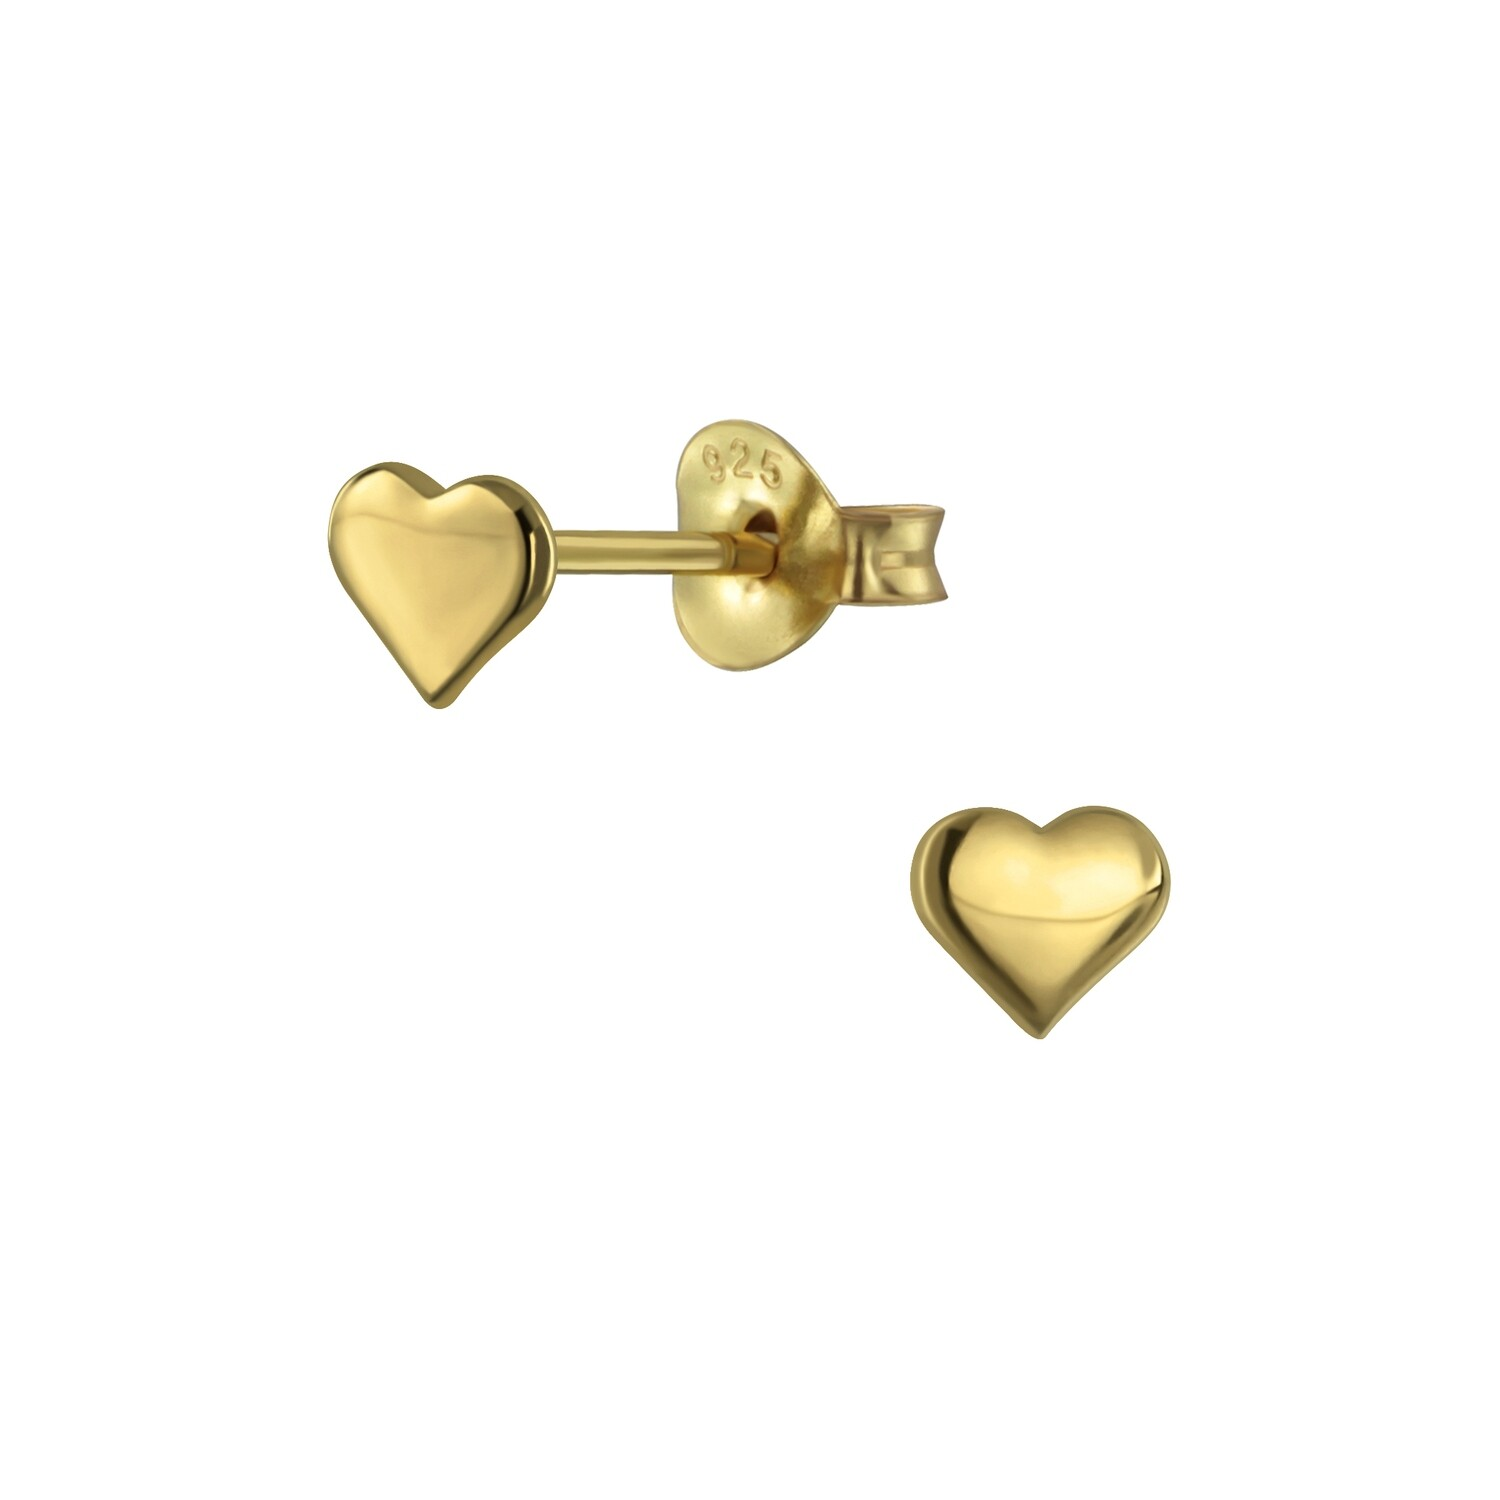 4mm Heart Posts - Gold Plated Sterling Silver - P60-2